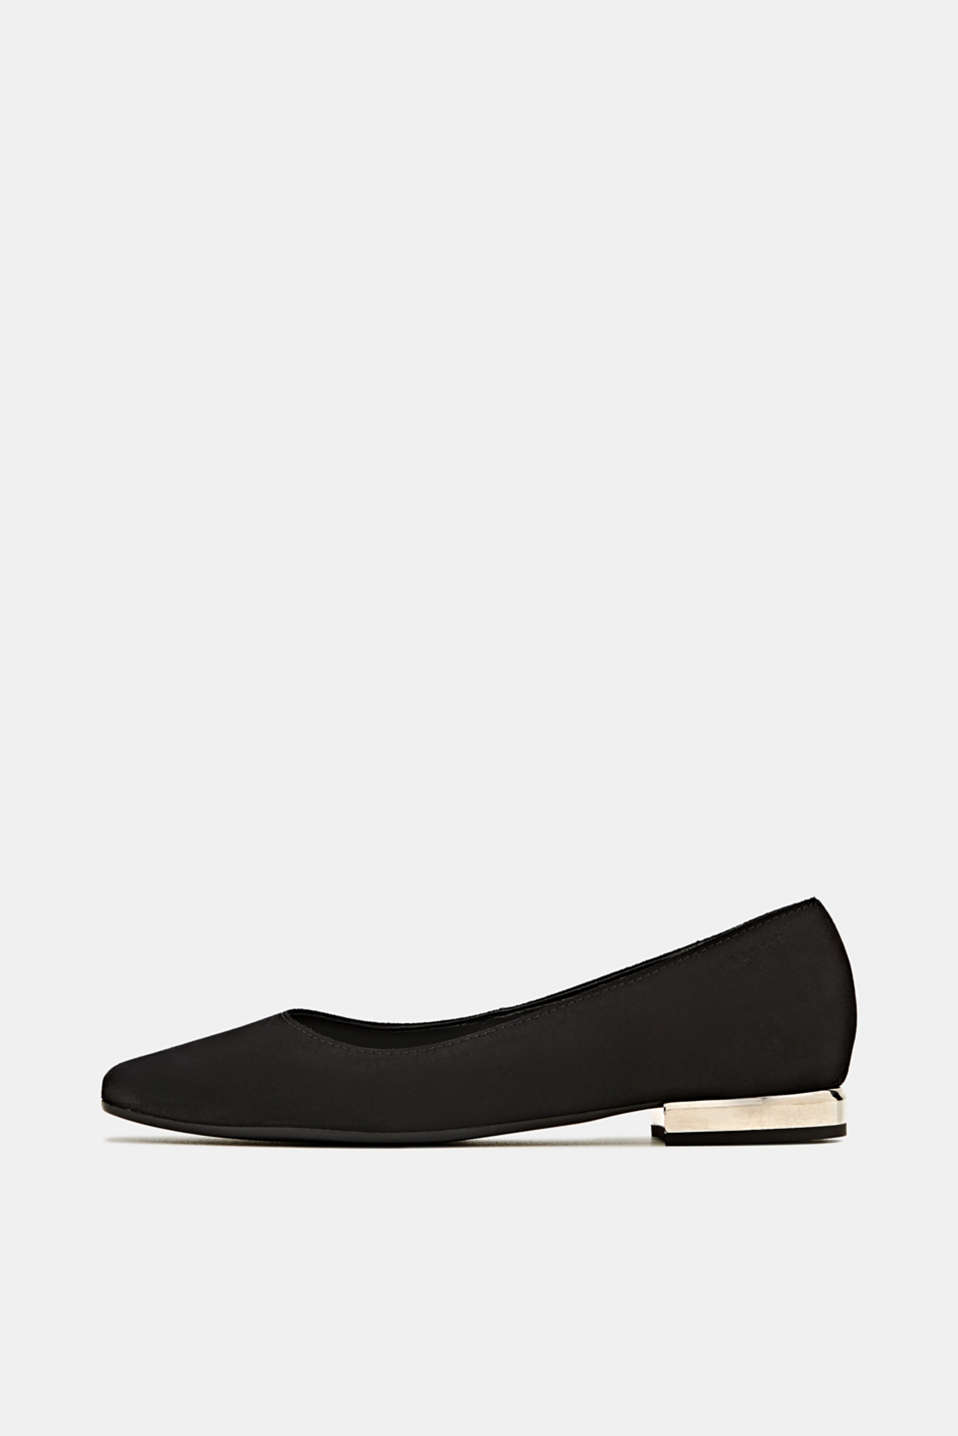 Esprit - Made of suede: ballerinas with a shiny heel